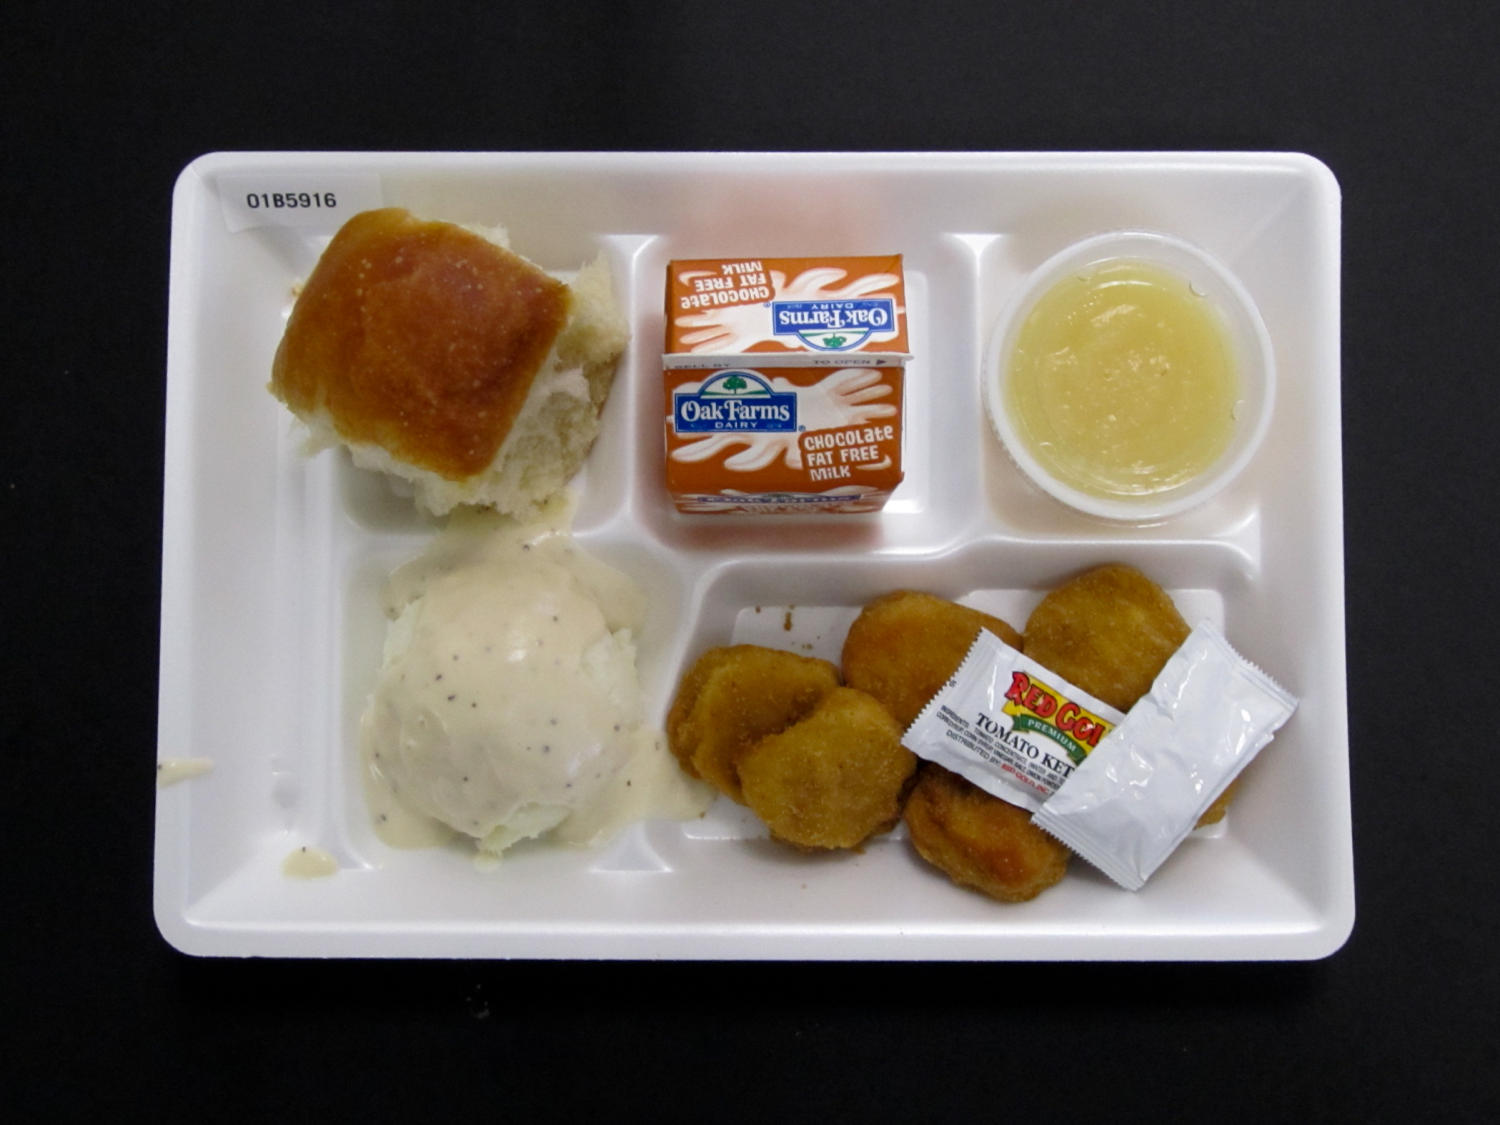 Student Lunch Tray: 01_20110330_01B5916                                                                                                      [Sequence #]: 1 of 2